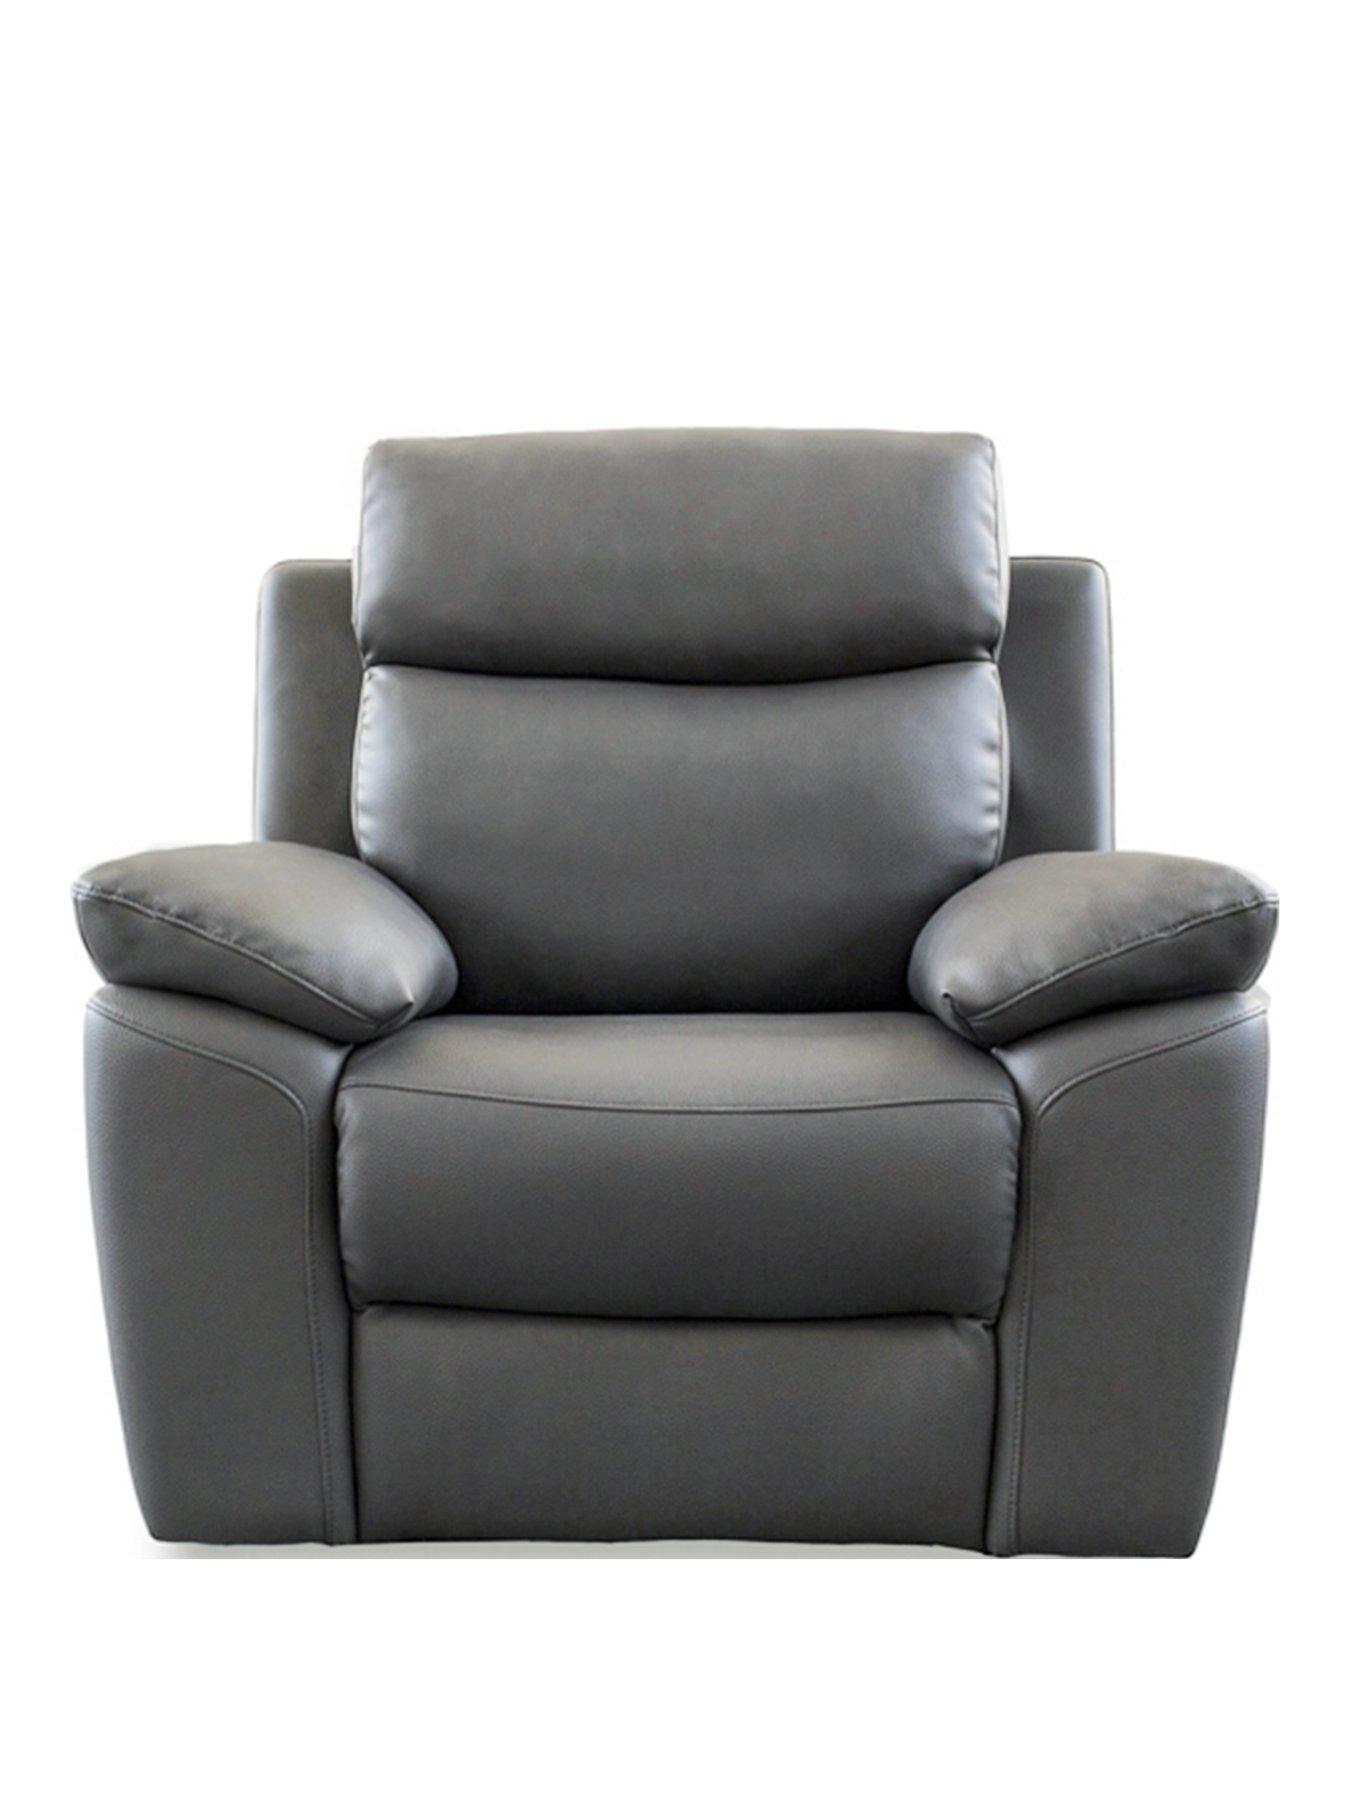 recliner chairs uk plastic chair mat armchairs home garden www very co edison luxury faux leather manual armchair